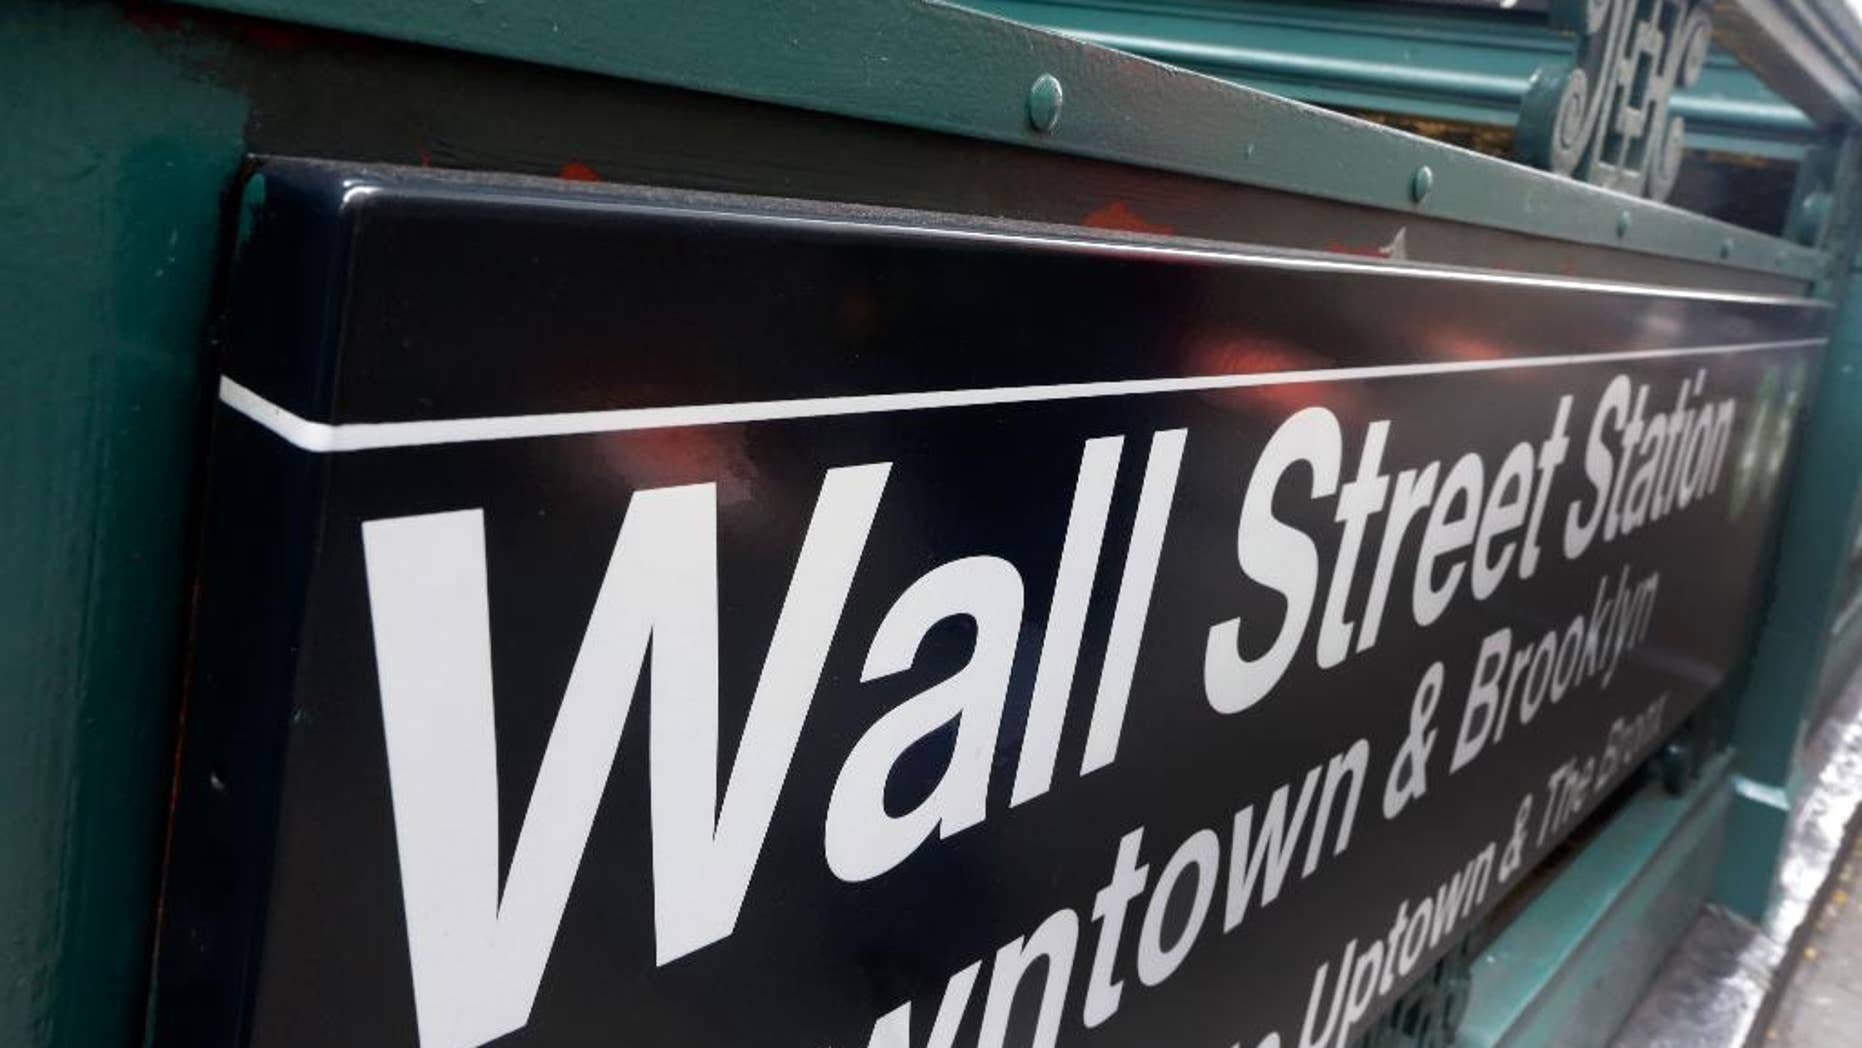 FILE-This Oct. 29, 2014 file photo shows the Wall Street subway stop on Broadway, in New York's Financial District.  U.S. stocks are falling broadly in early trading on Friday, April 17, 2015,  following steep declines in Europe and some results from big U.S. companies. Nine of the 10 industry groups of the Standard and Poor's 500 are down, led by information technology companies.  (AP Photo/Richard Drew)